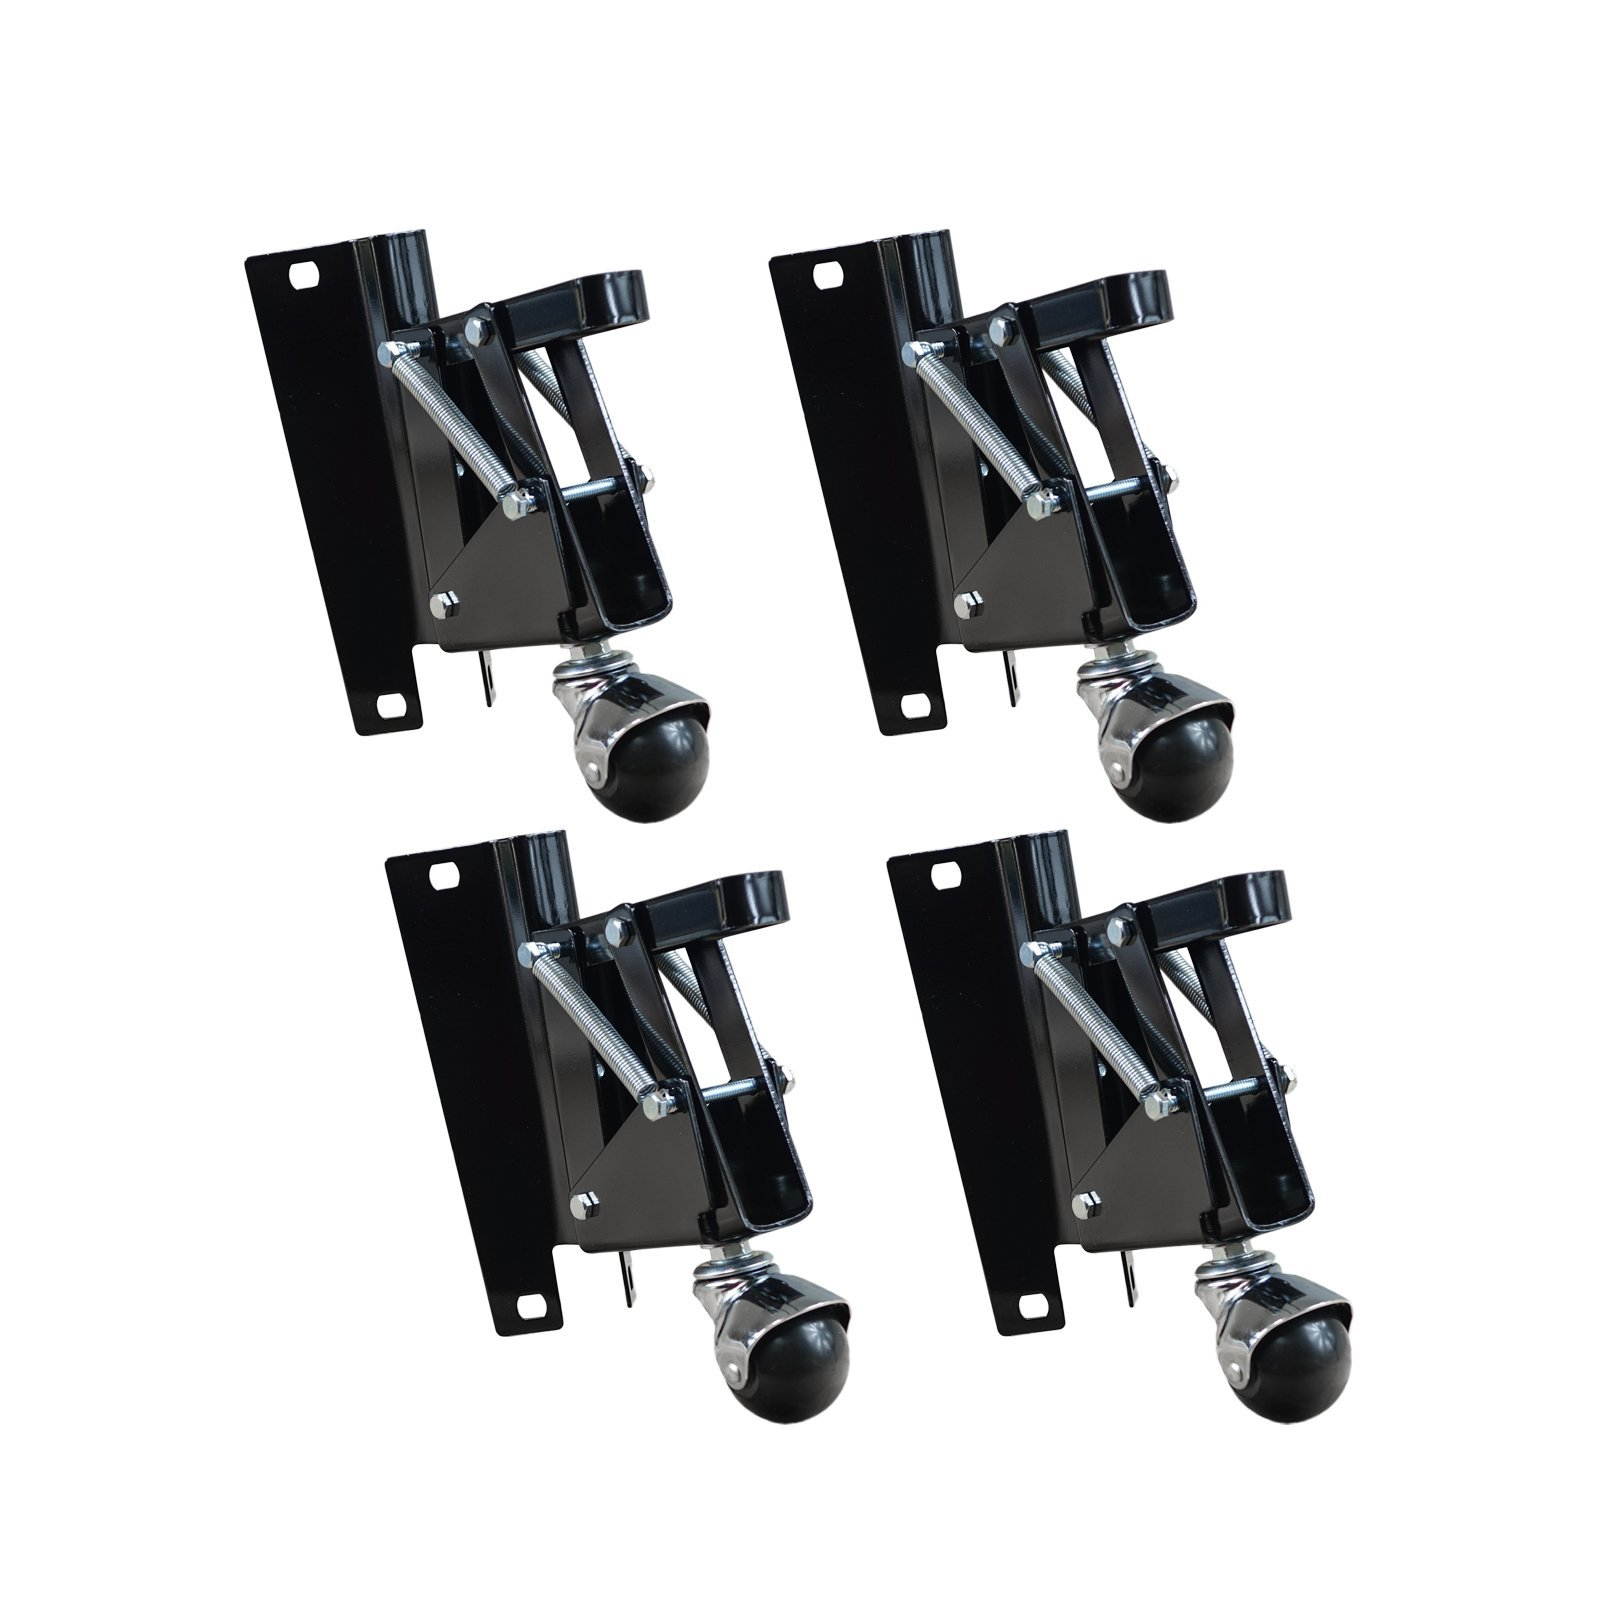 POWERTEC 17200 Retractable Caster Kit (4 Pack)